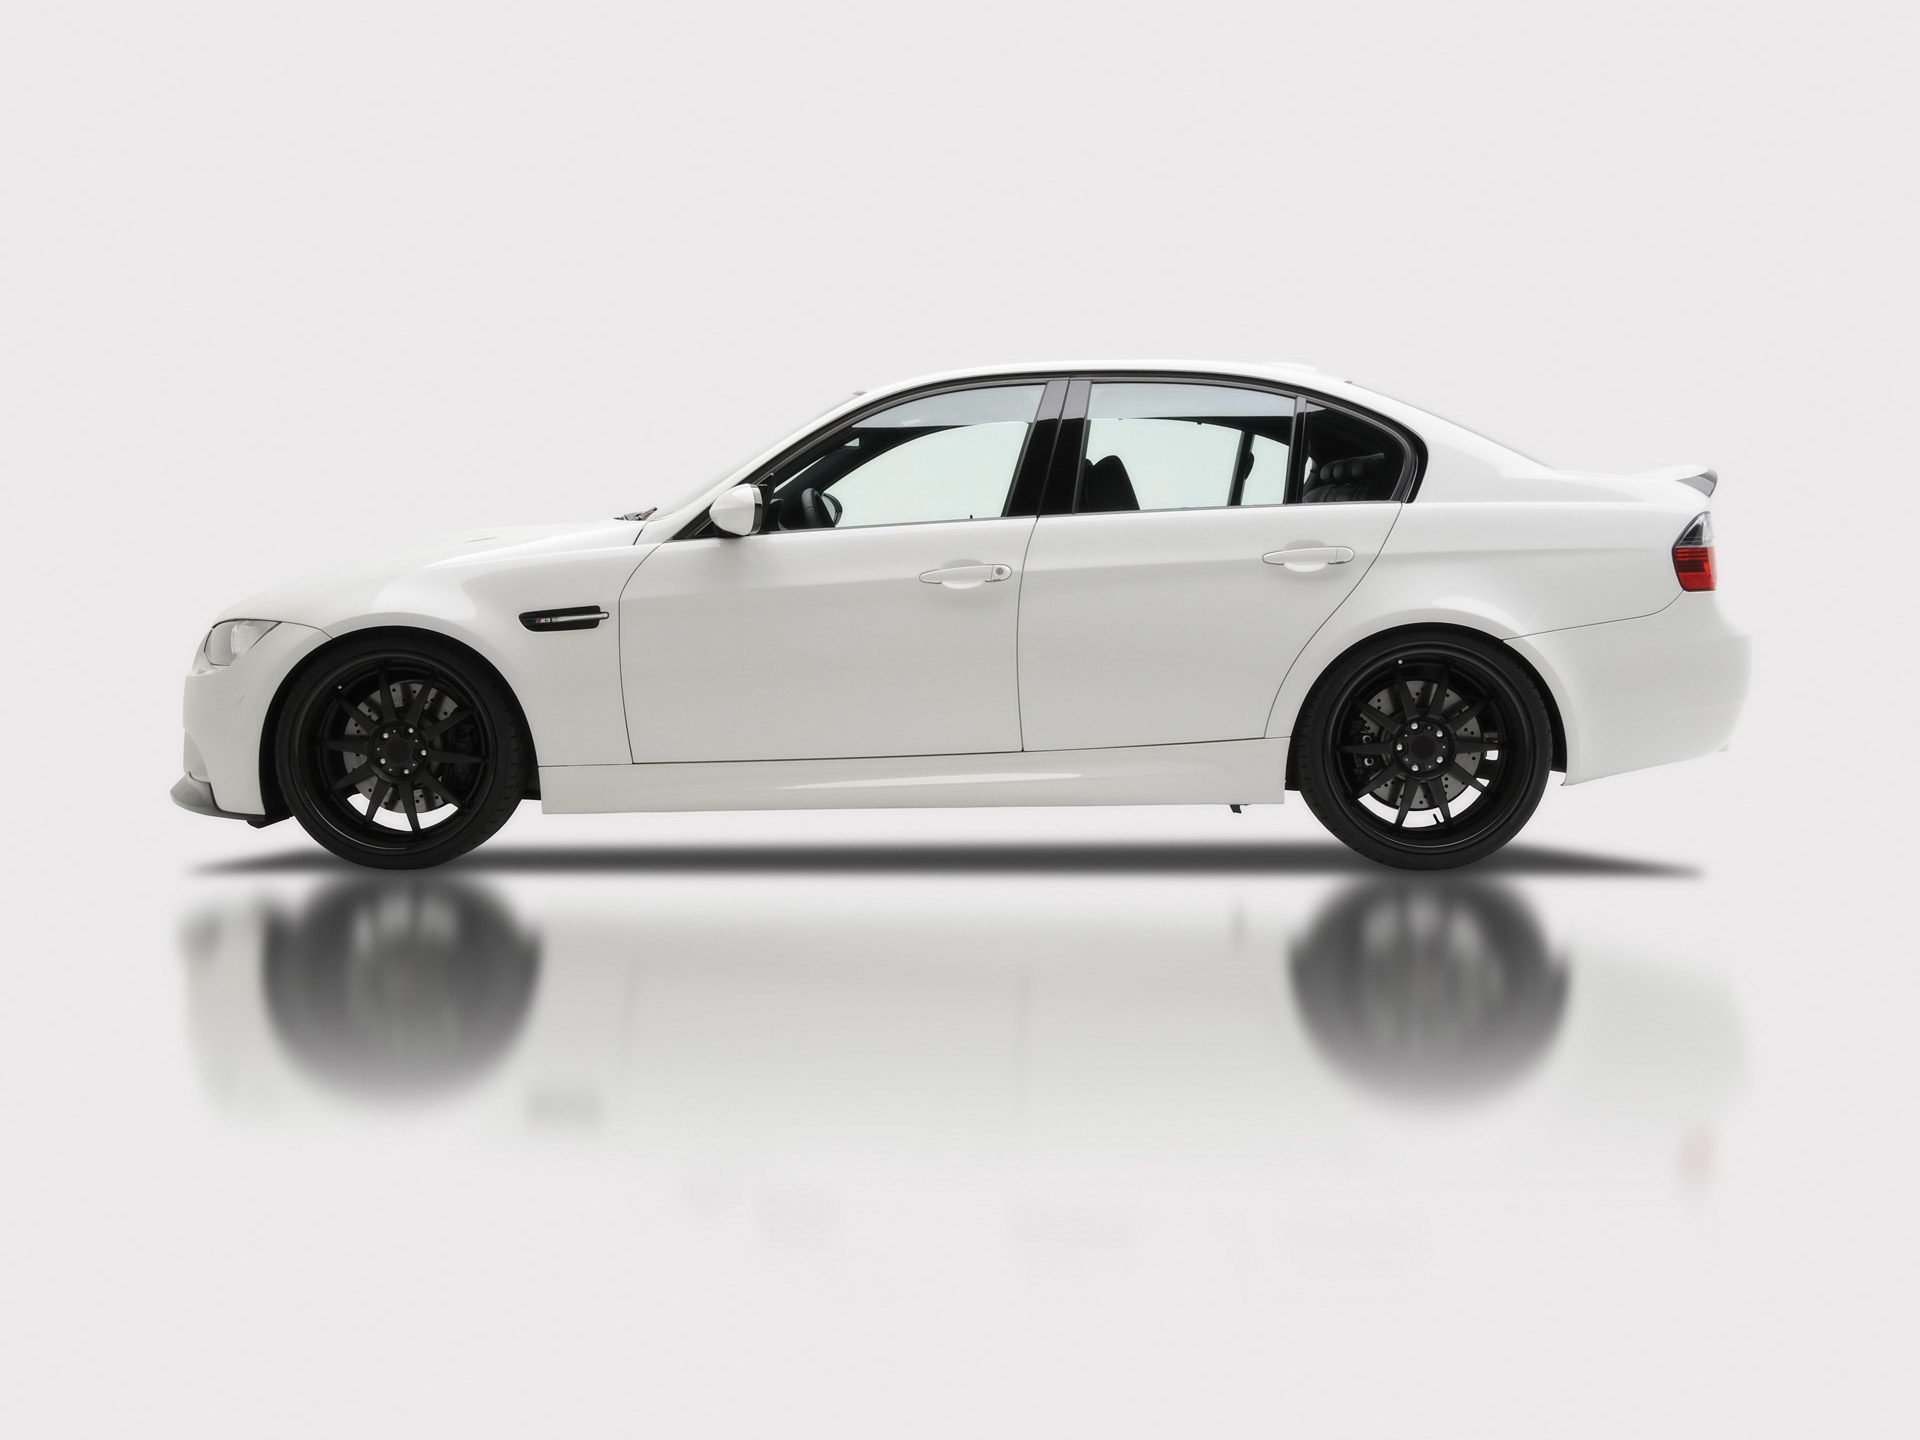 2009 Bmw M3 E90 Sedan 1920x1440 Wallpaper Teahub Io